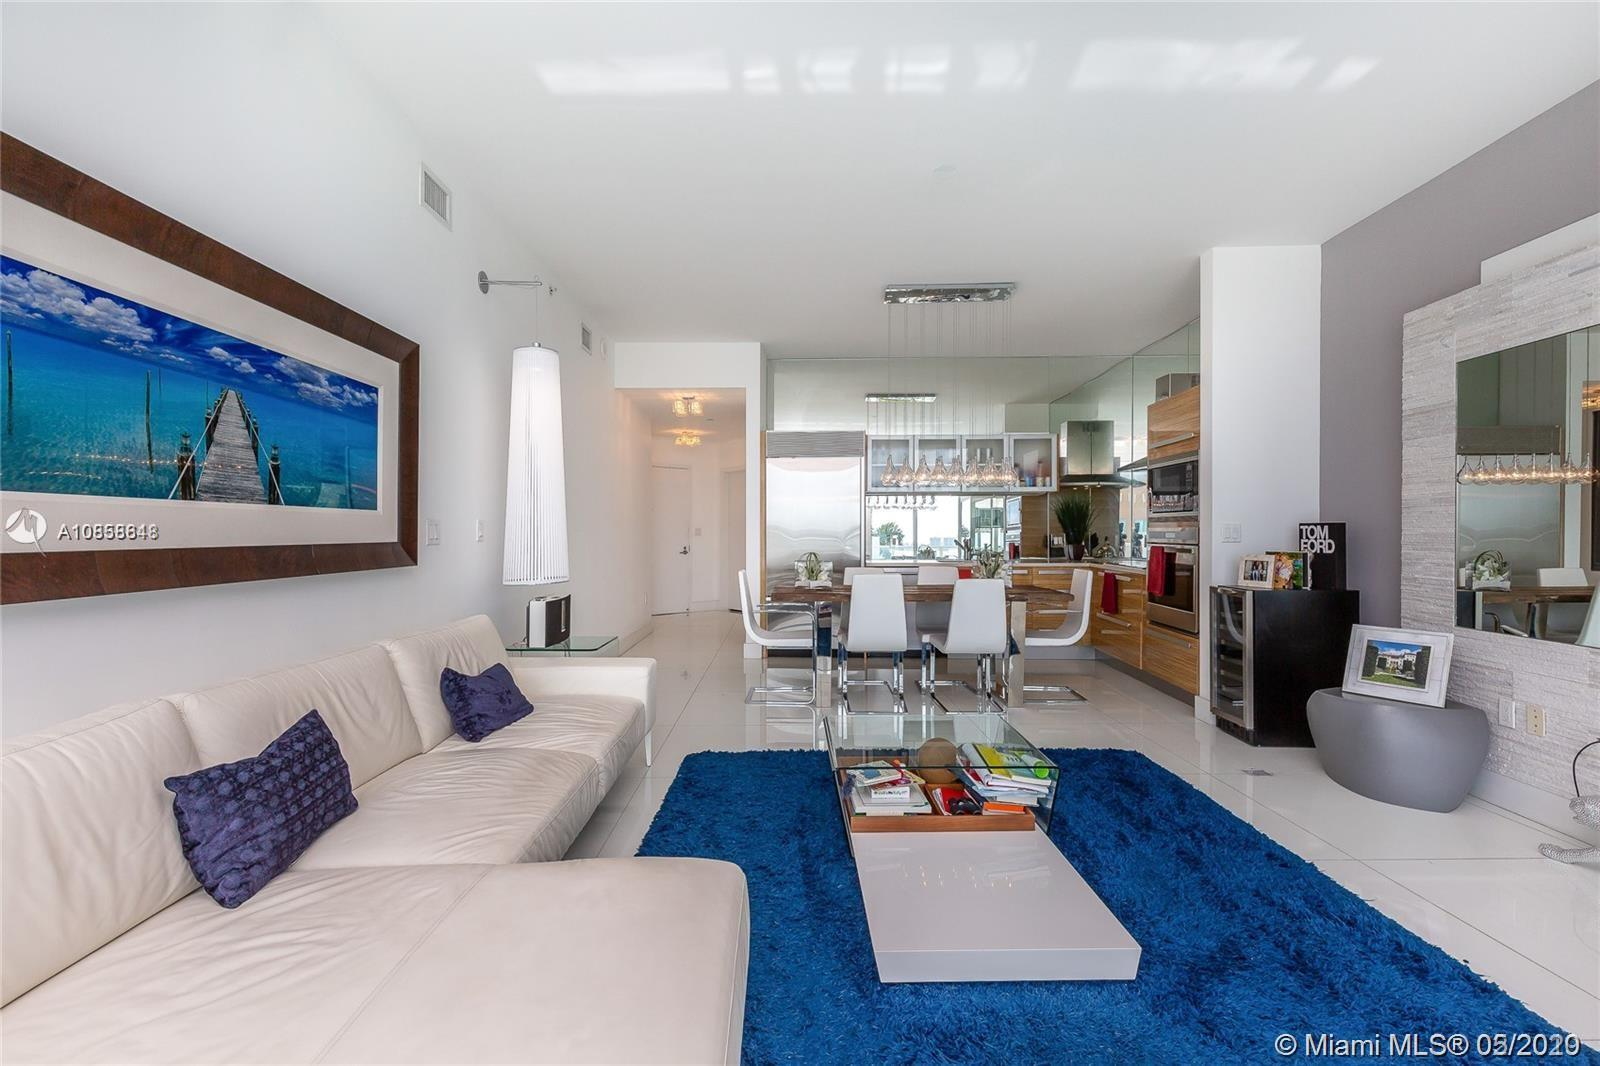 Beautiful 2 bedrooms, 2 bathrooms unit with over $100k in upgrades at Paramount Bay. Tastefully furn